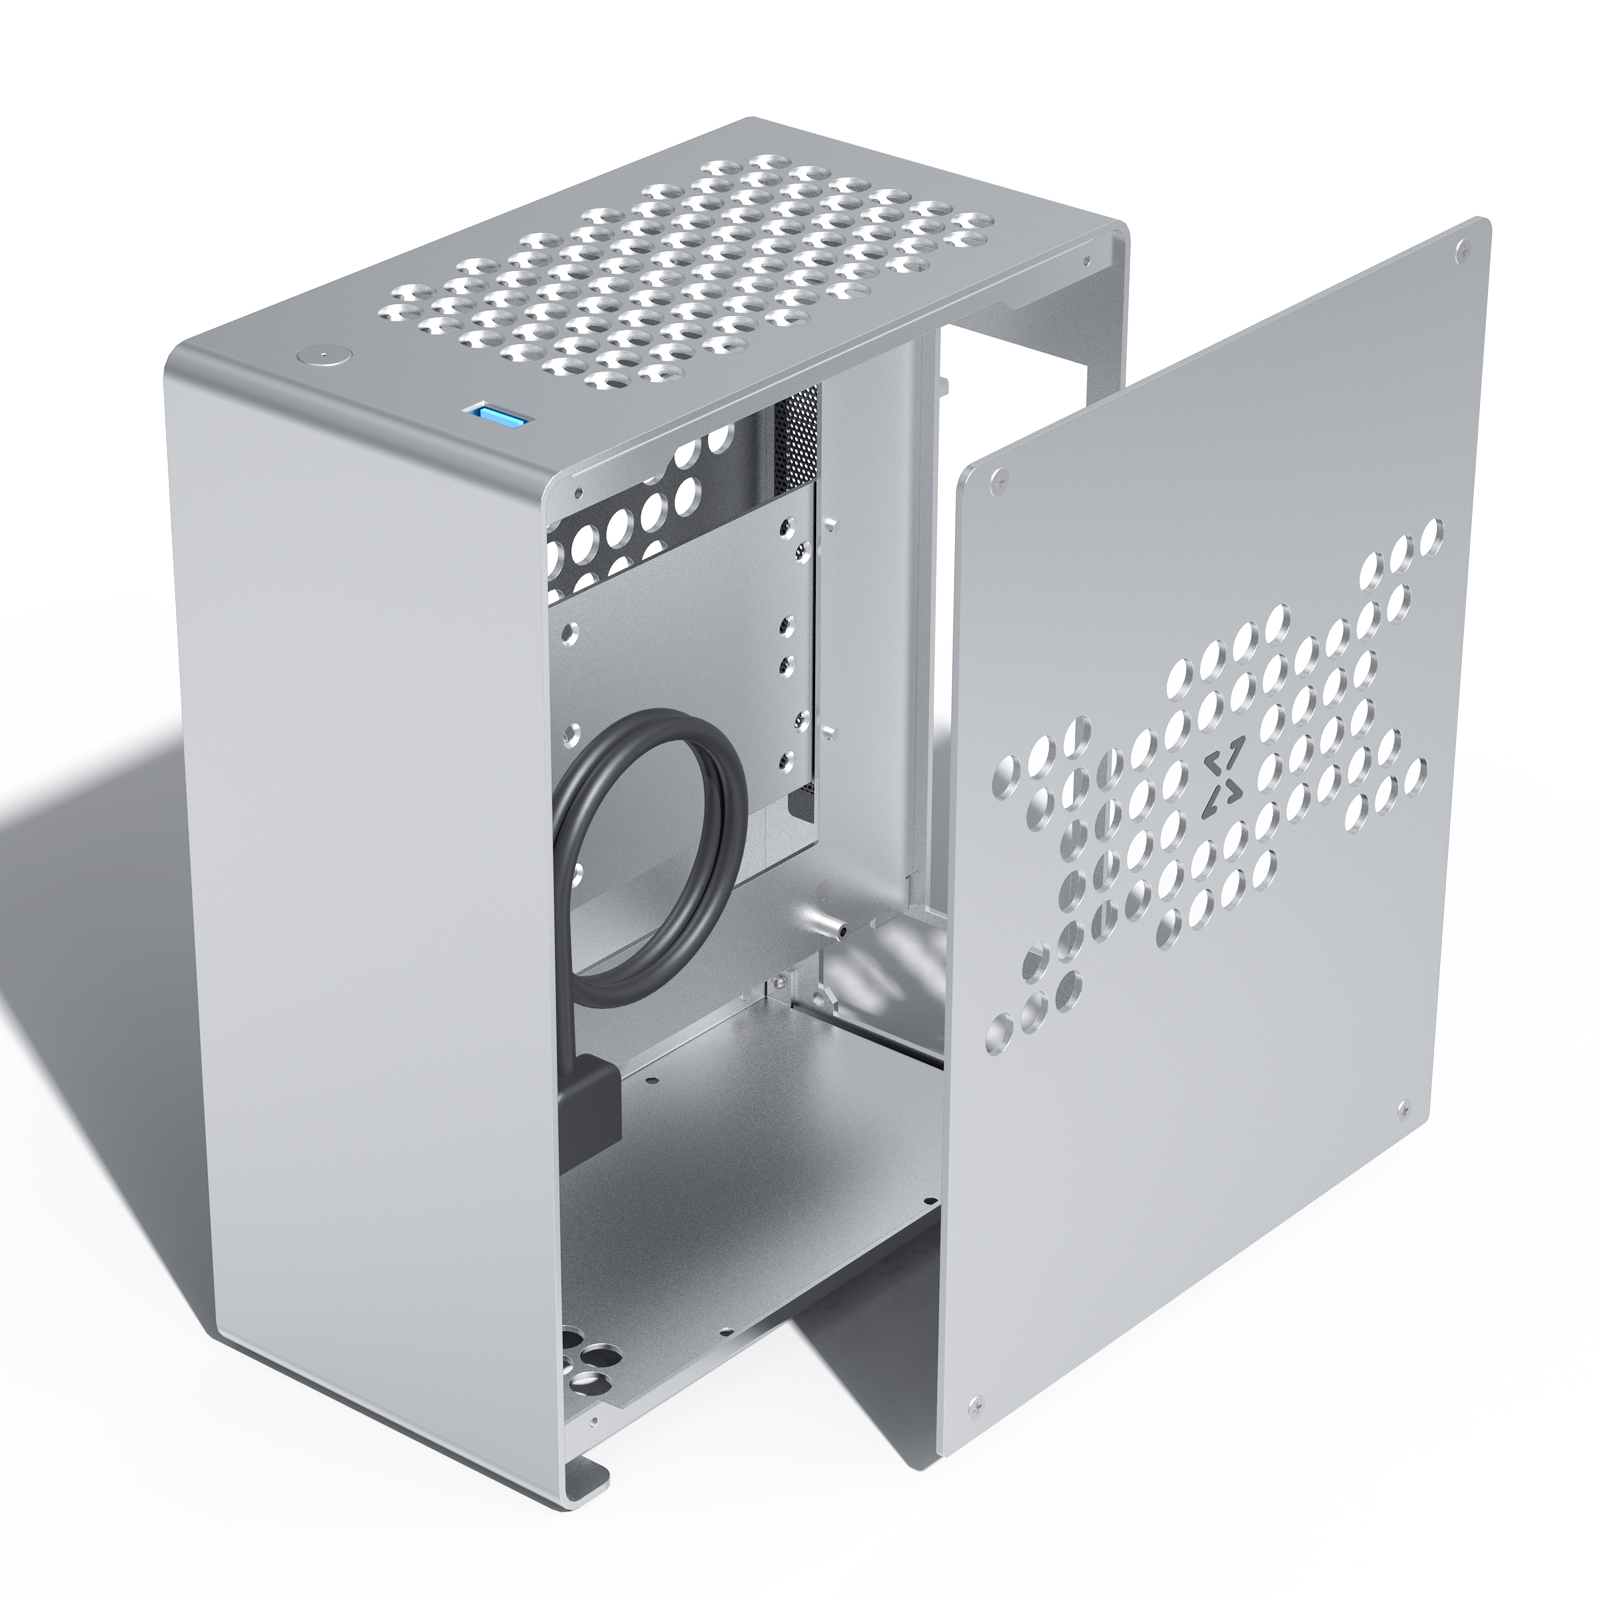 ZZAW A1 ITX Computer Case Aluminum Alloy Mini Small Chassis Air cooled FLEX/1U Power for Gaming and Home Use